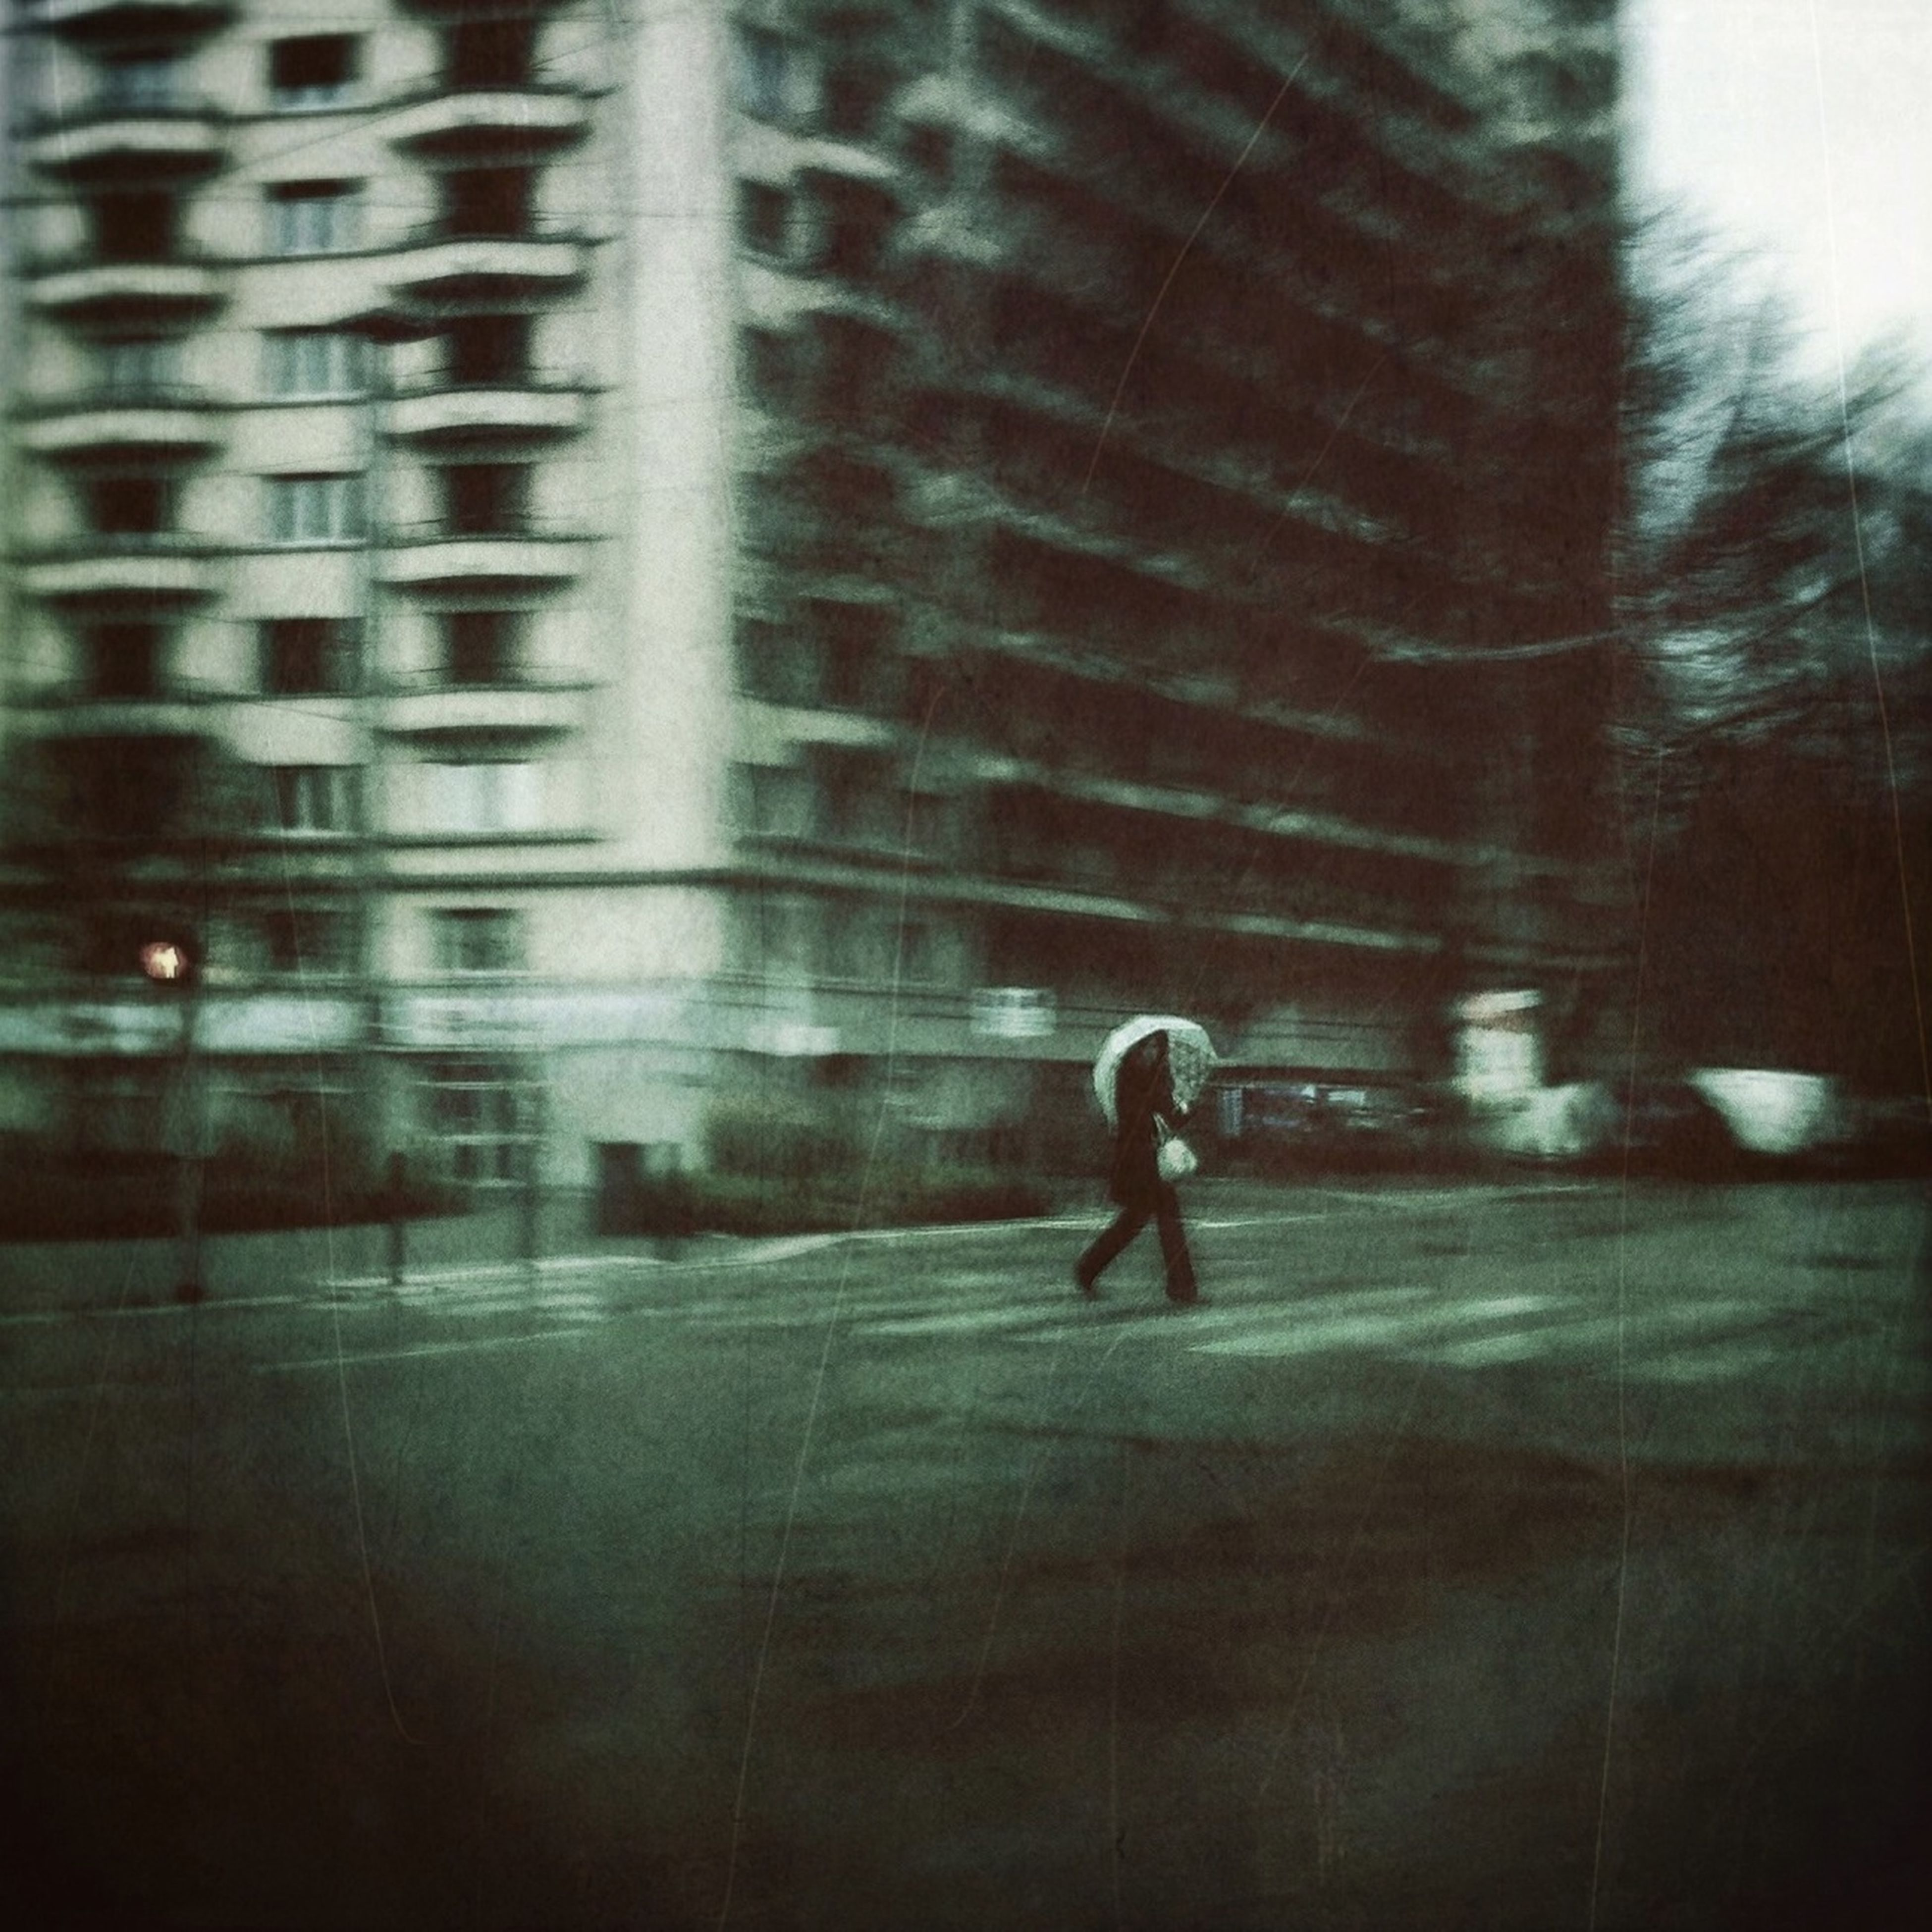 street, built structure, building exterior, architecture, walking, road, rain, transportation, full length, city, blurred motion, wet, on the move, motion, window, sidewalk, unrecognizable person, day